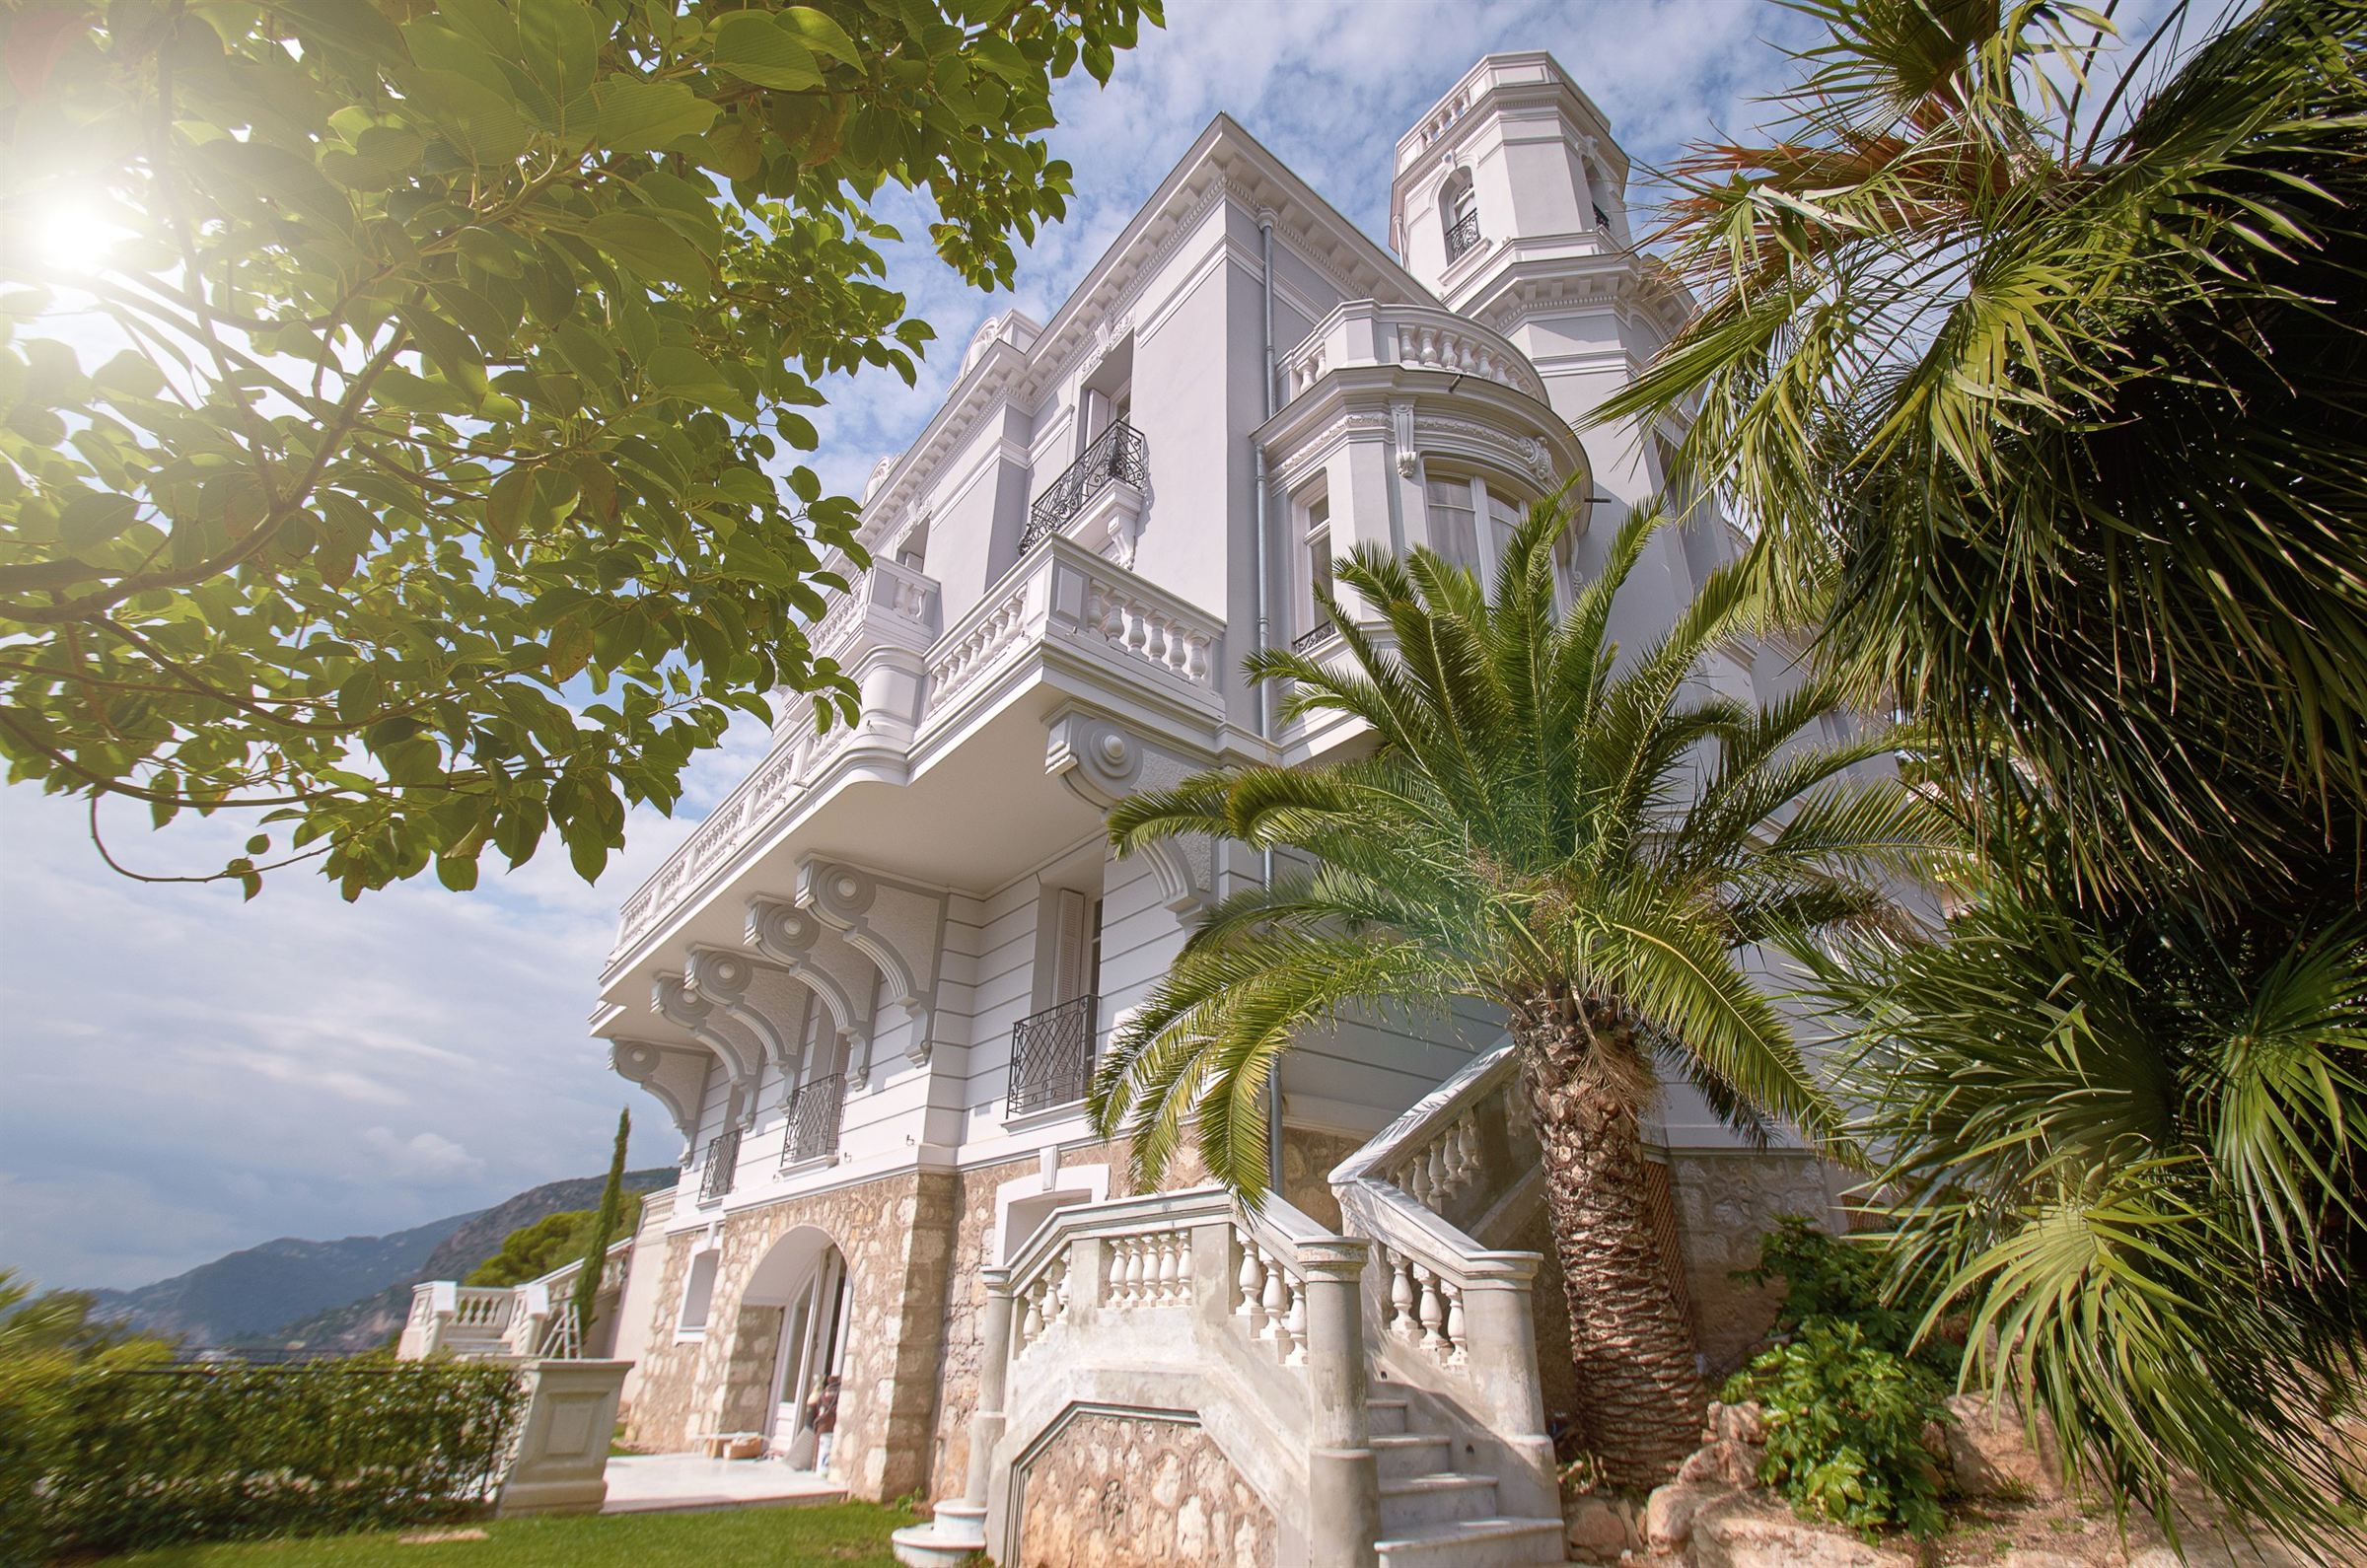 Single Family Home for Sale at Prestigious Belle Epoque mansion Other France, Other Areas In France 06320 France